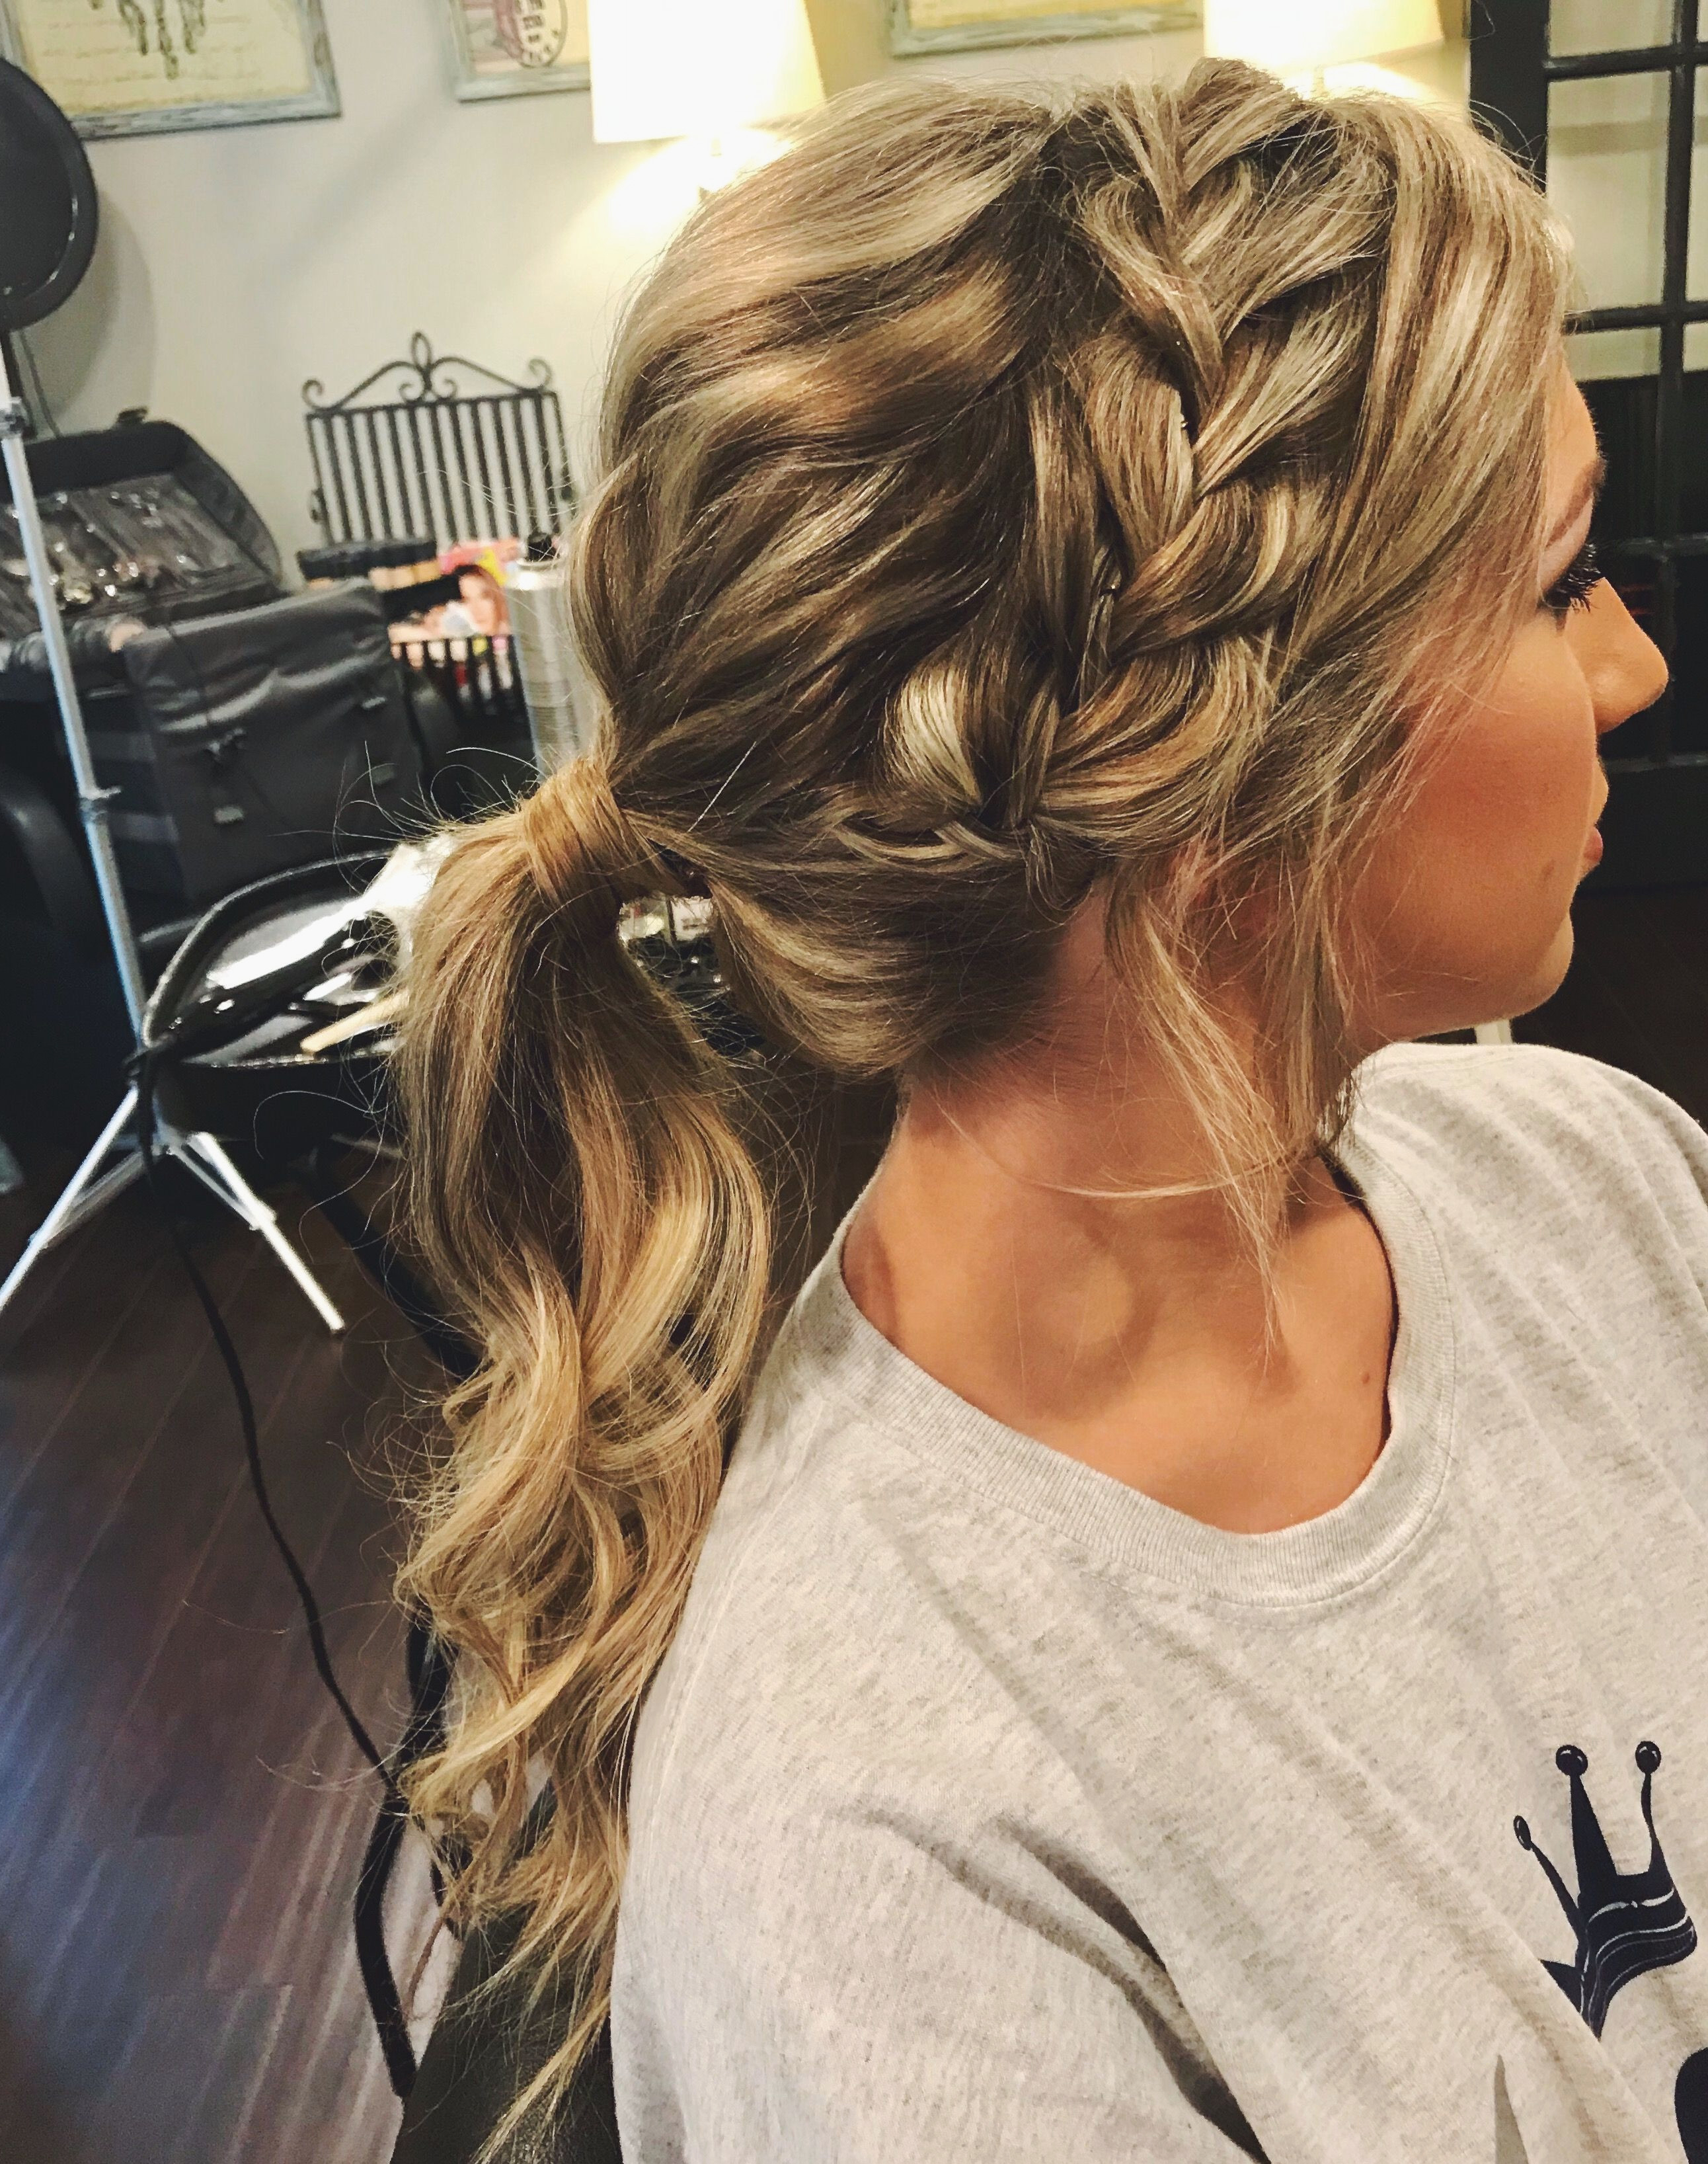 Braid Prom Hairstyles Lovely Lovely Twist Hairstyles For Long Hair Throughout Most Popular Twisting Braided Prom Updos (View 4 of 20)